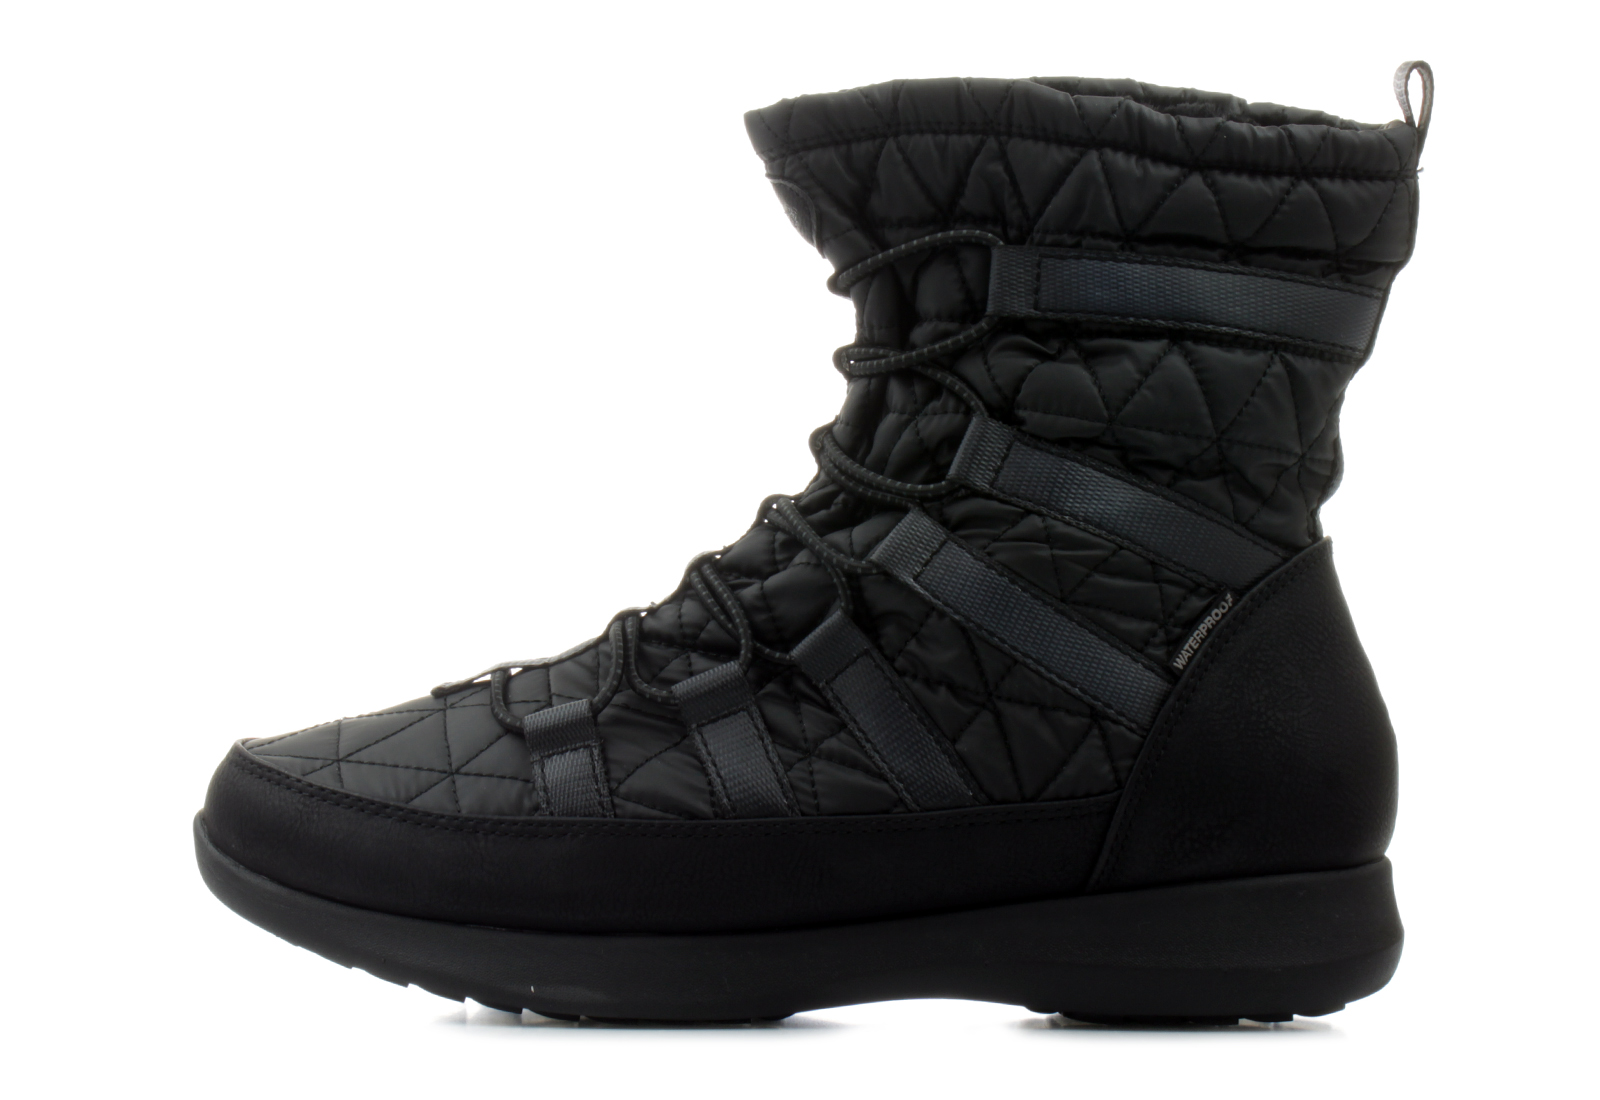 Skechers Boots Boulder East Stone 49806 blk Online shop for sneakers, shoes and boots